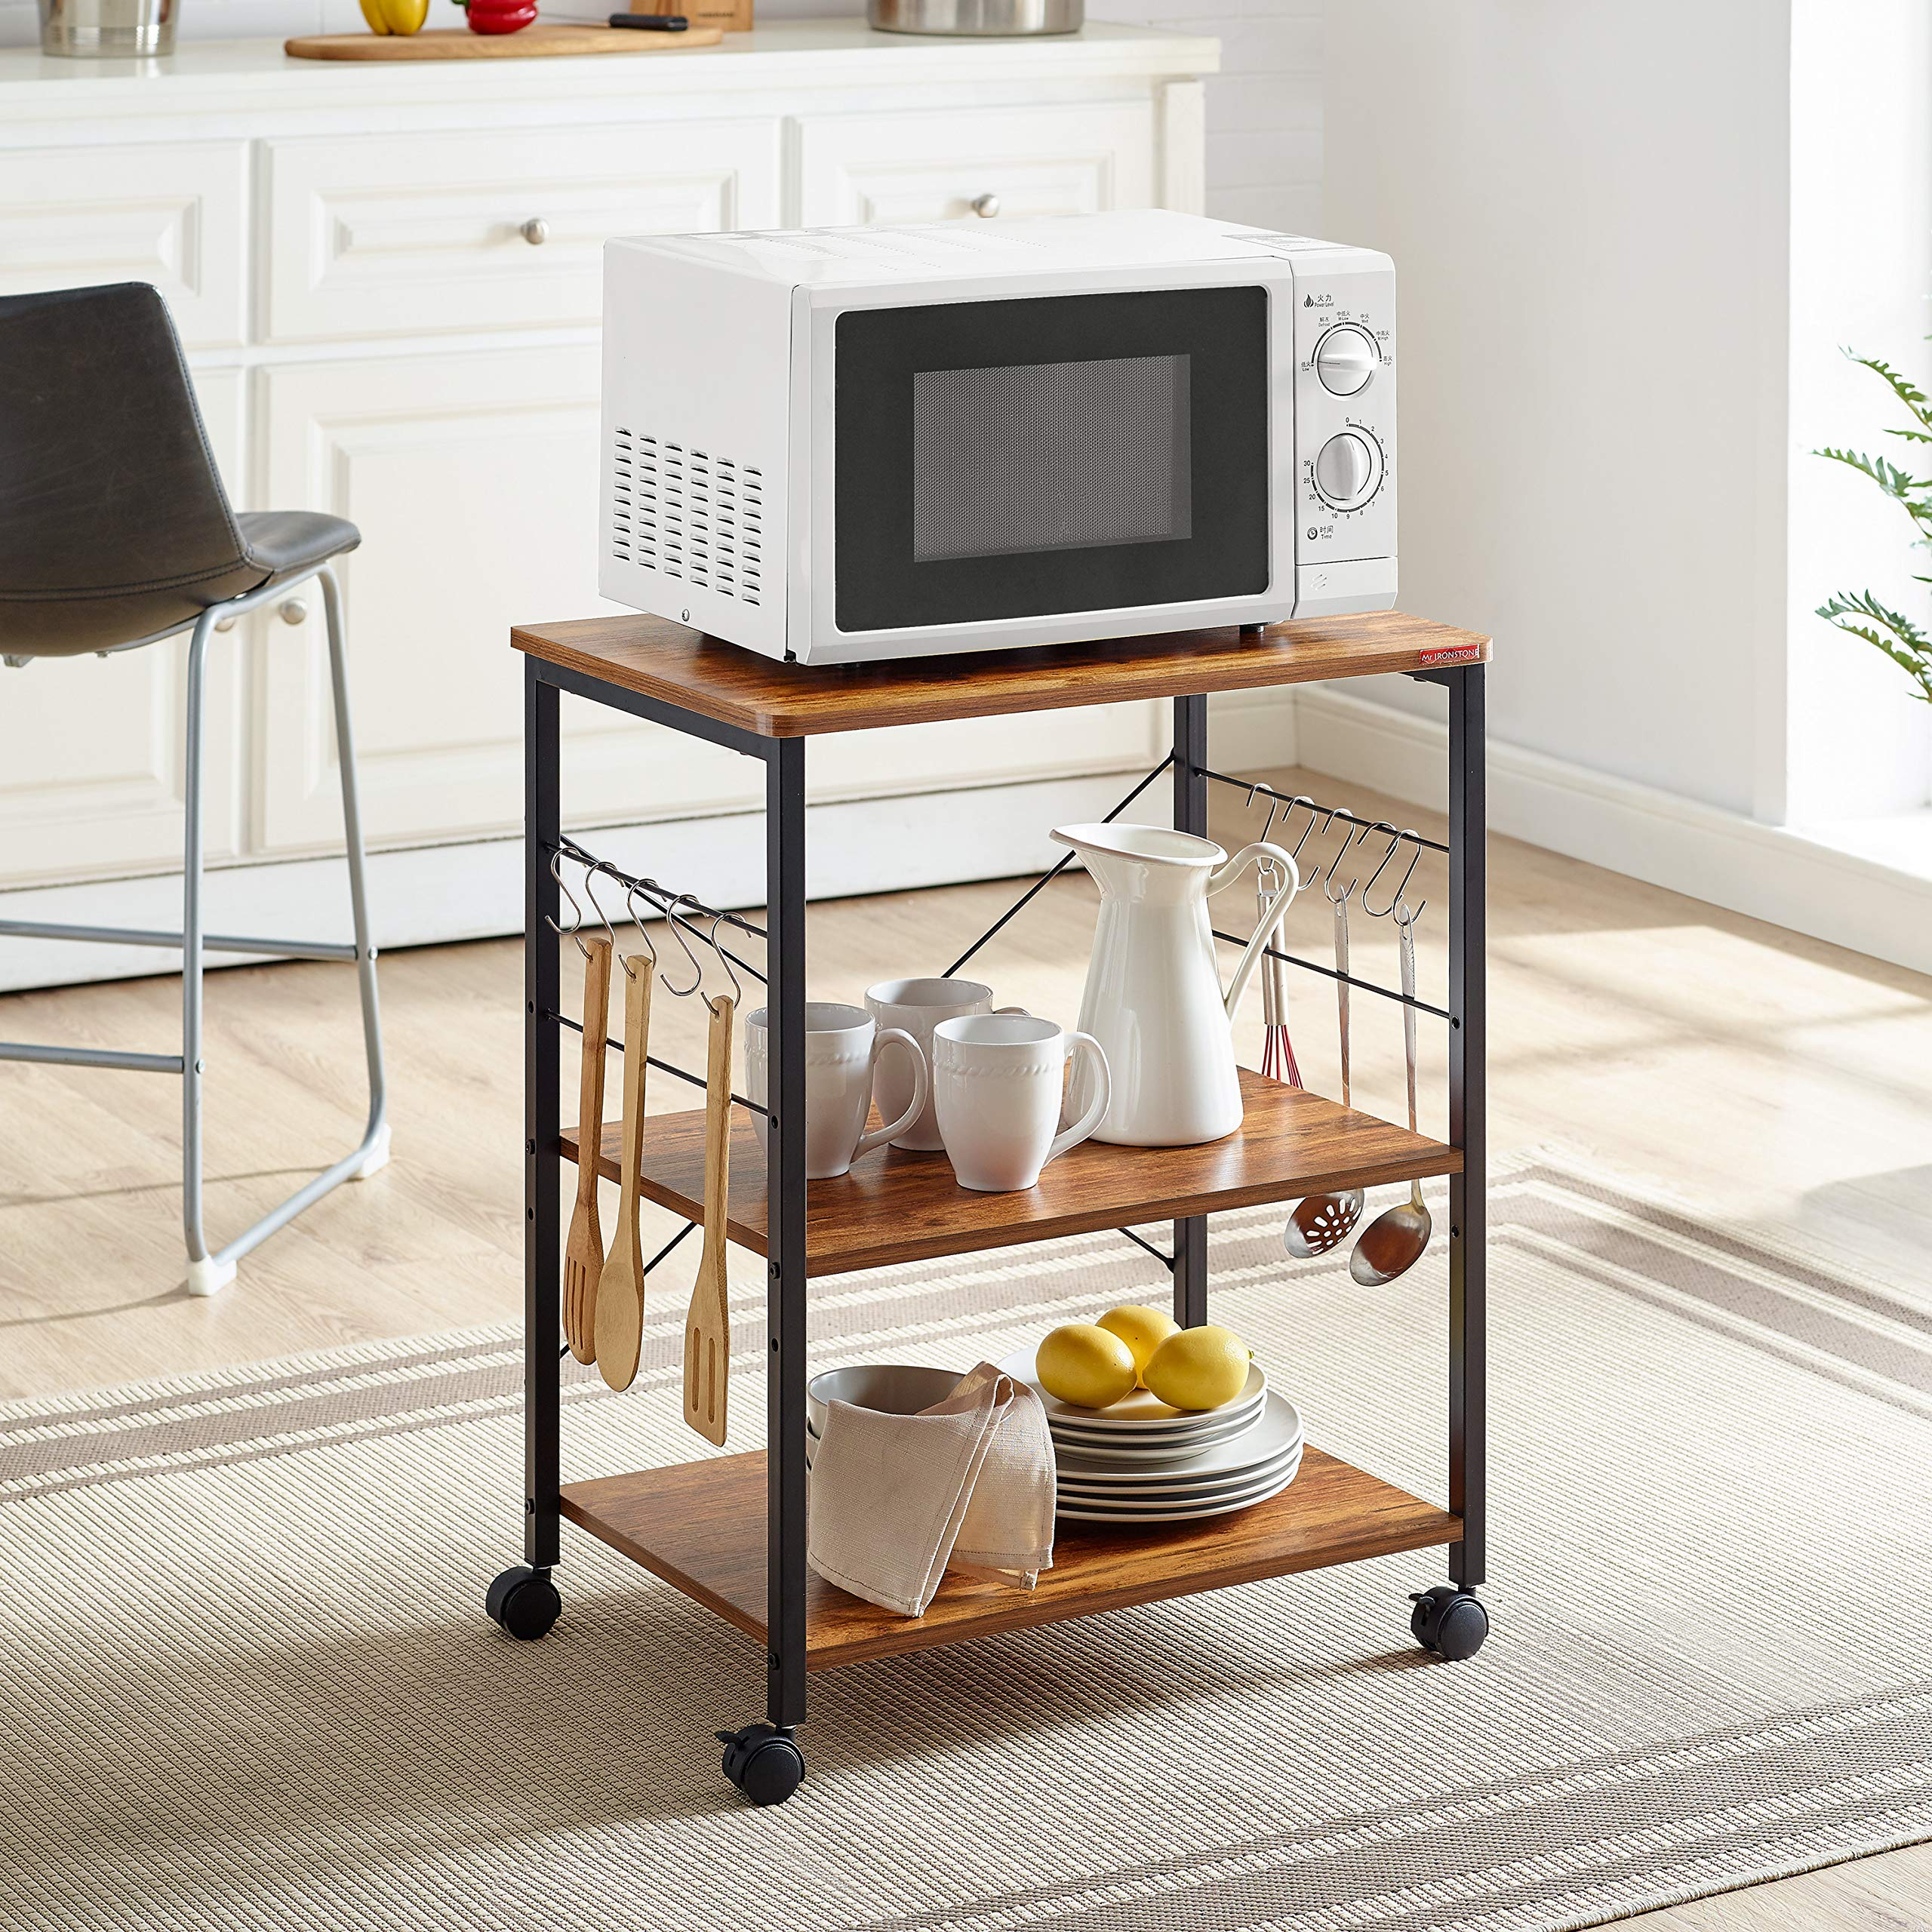 Mr IRONSTONE Kitchen Microwave Cart 3-Tier Kitchen Utility Cart Vintage Rolling Bakers Rack with 10 Hooks for Living Room Decoration by Mr IRONSTONE (Image #2)